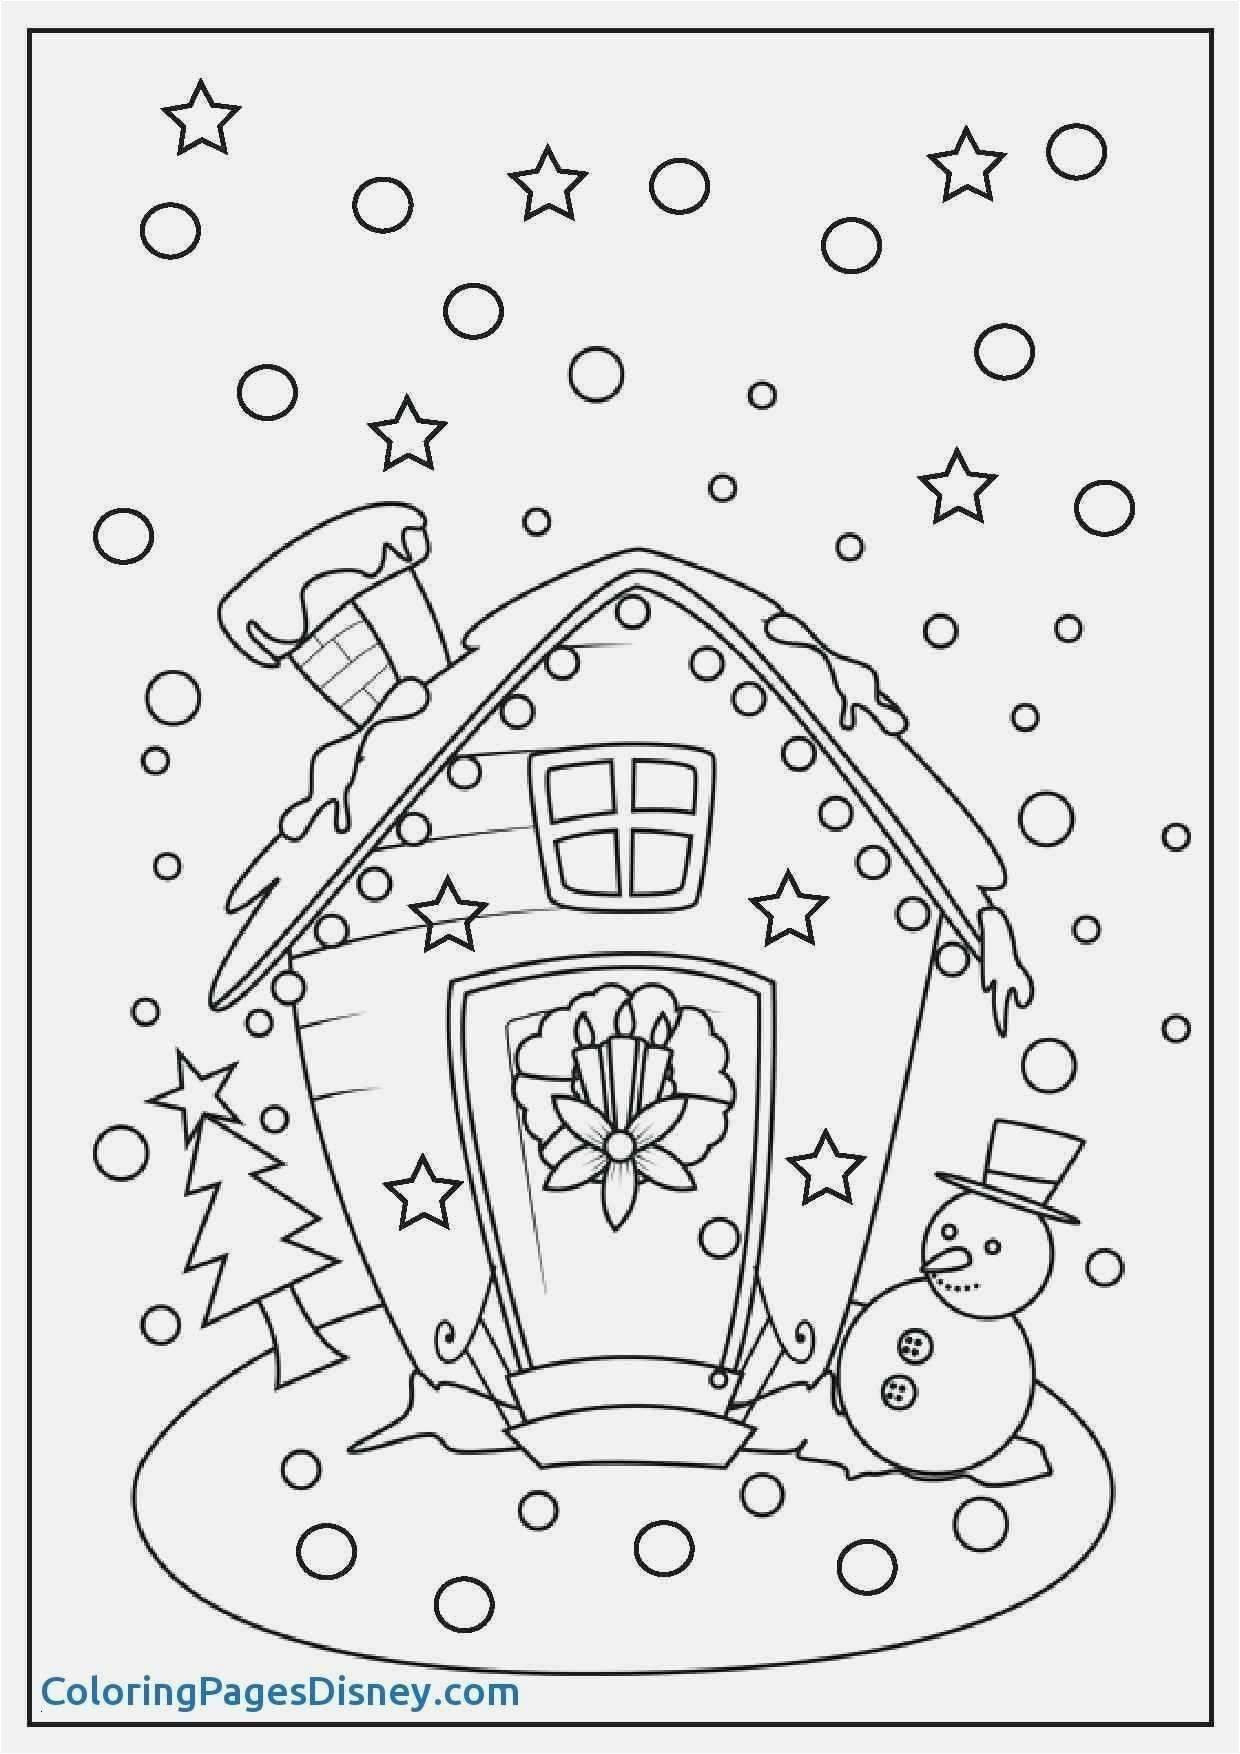 Ausmalbilder Weihnachten Elsa Und Anna Frisch Elsa and Anna Coloring Pages Awesome Best Free Coloring Galerie